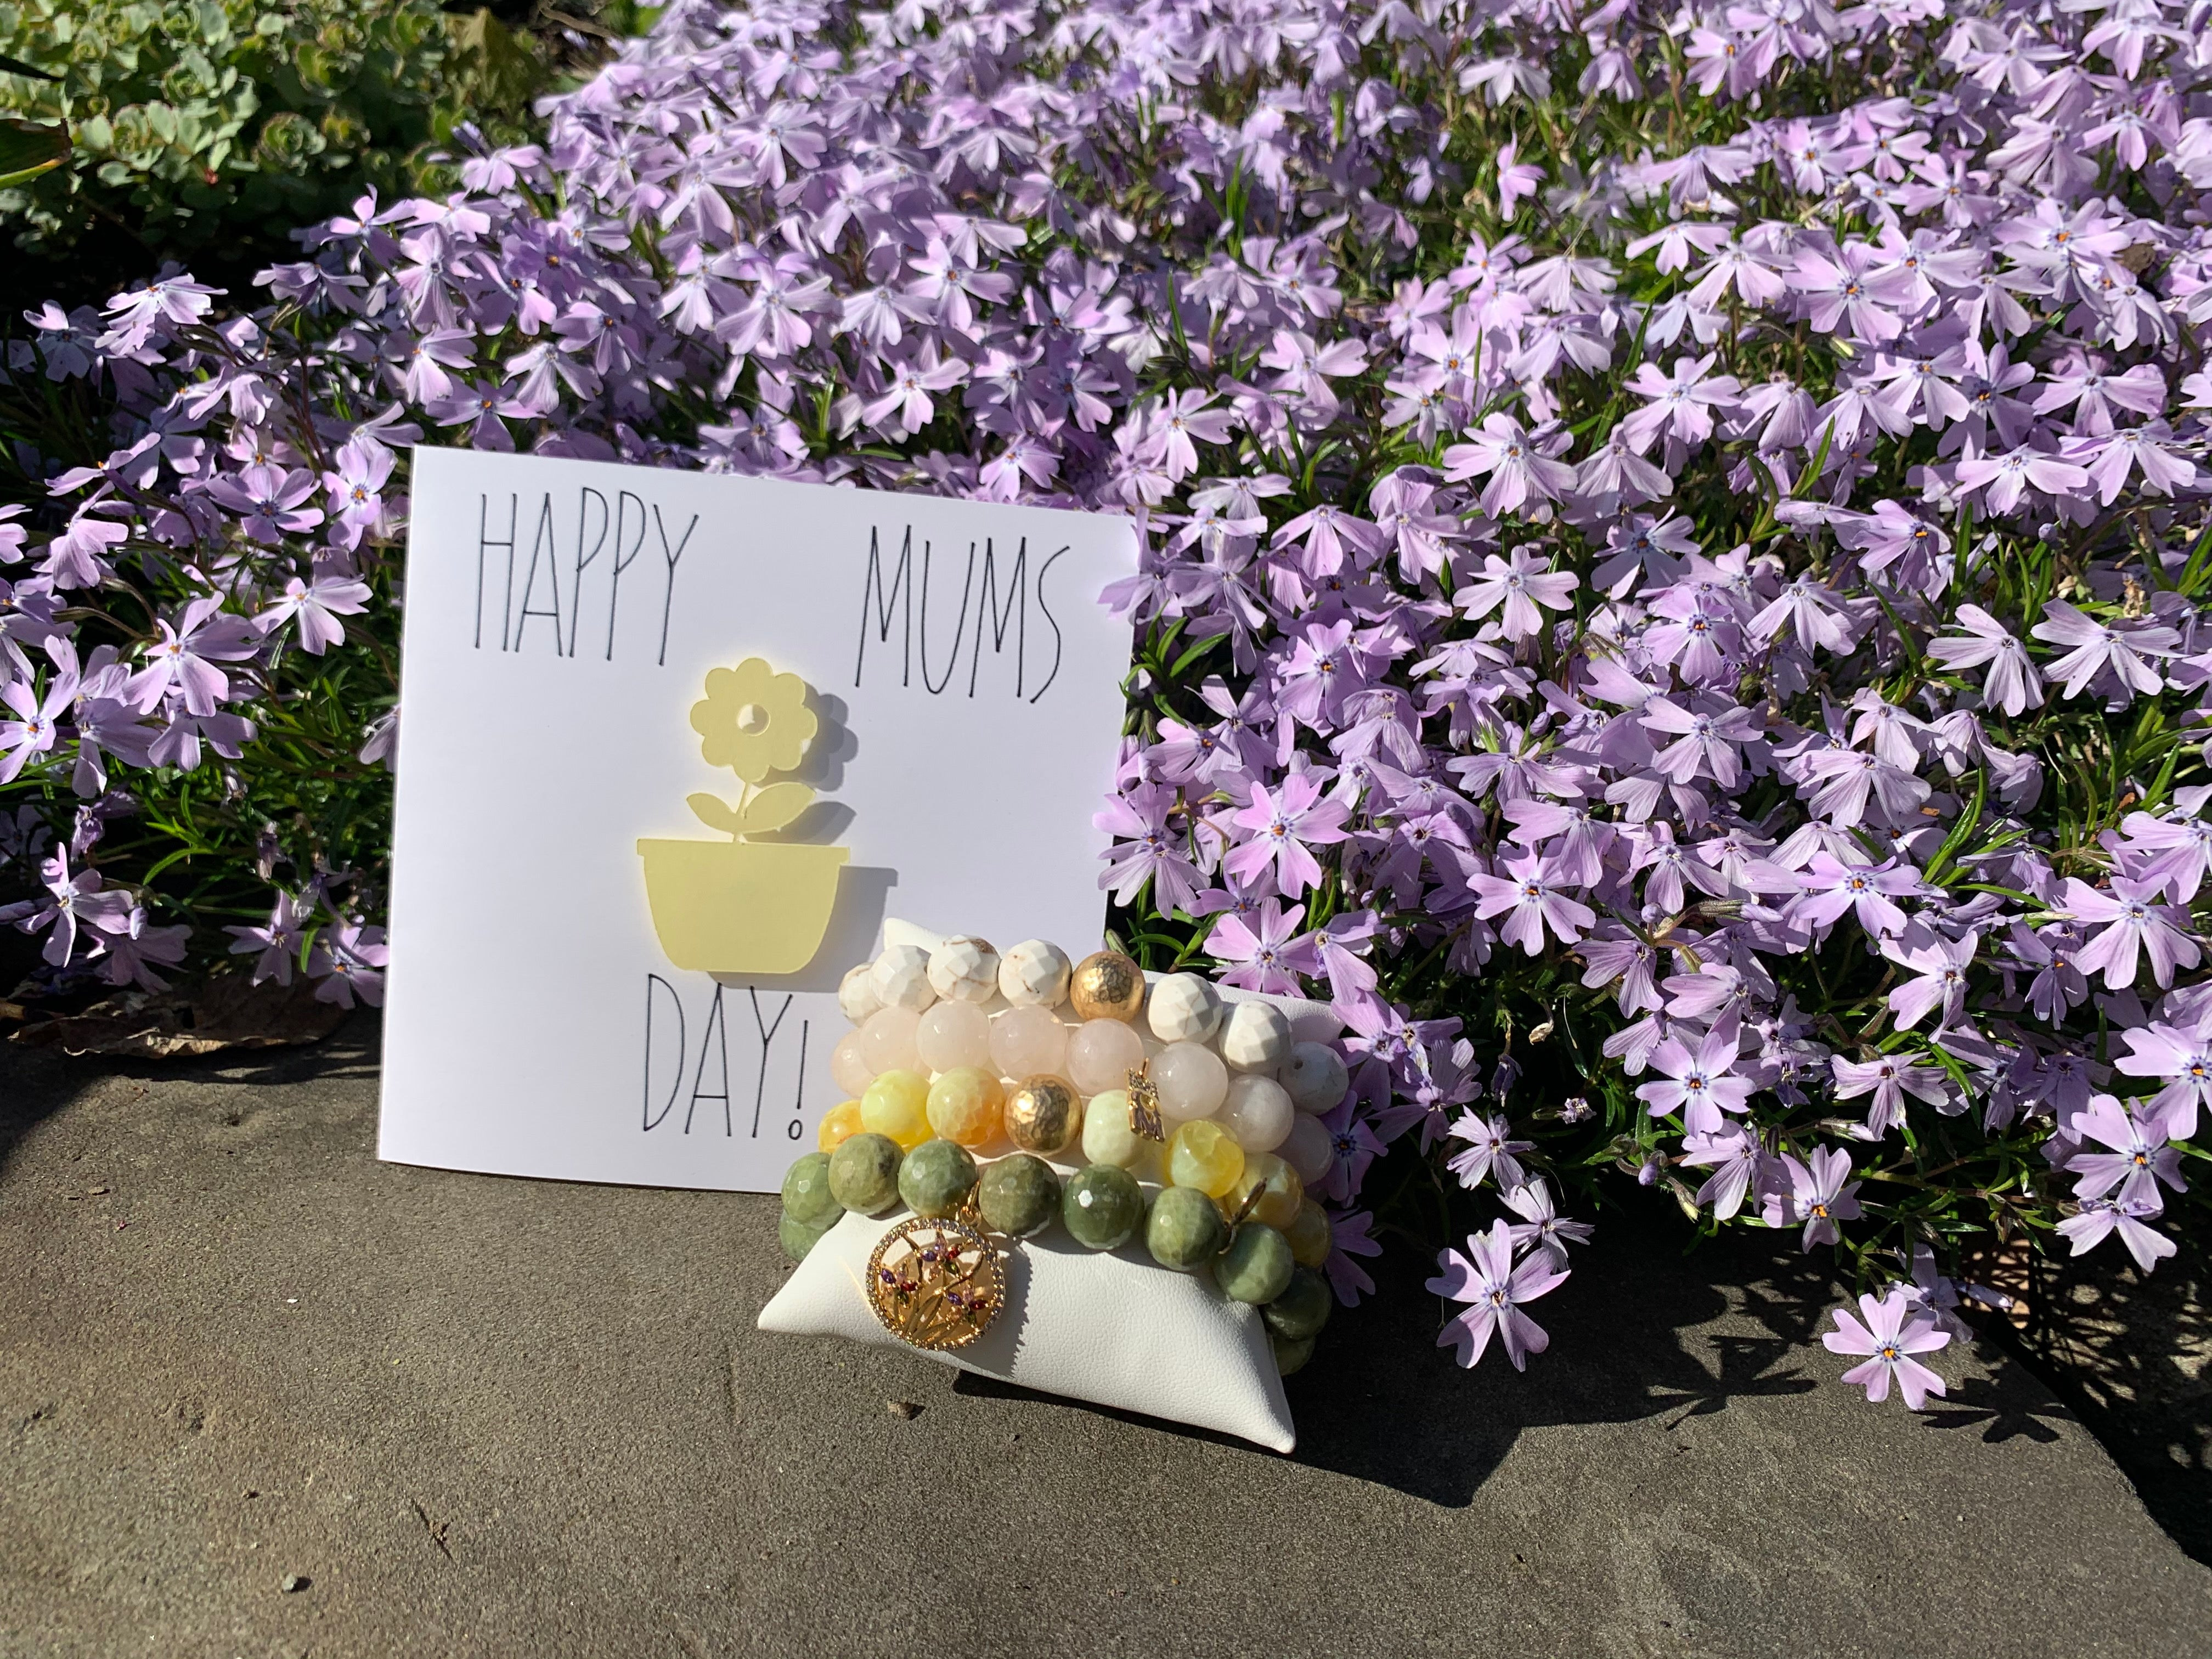 Happy Mums Day Arm Party - Oriana Lamarca LLC